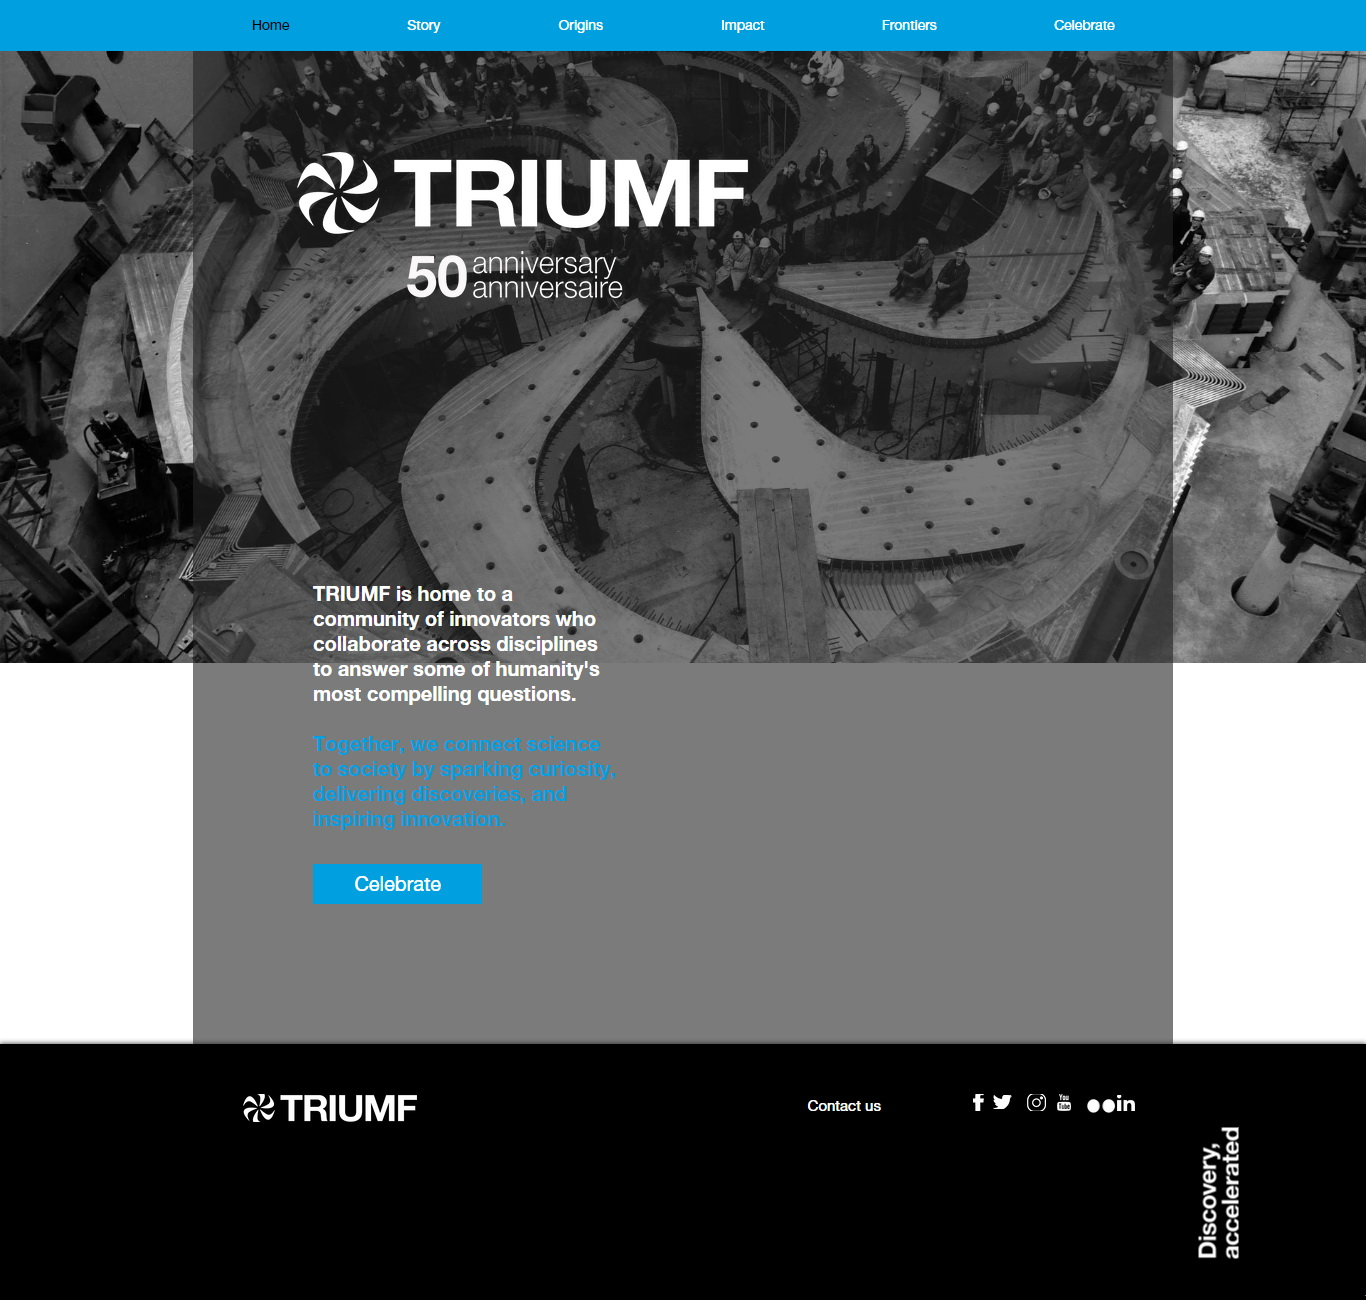 Collaboration is a key component of Diana's position. The communications team launched a  microsite for celebrating TRIUMF's 50th anniversary  in collaboration with people across a variety of disciplines.